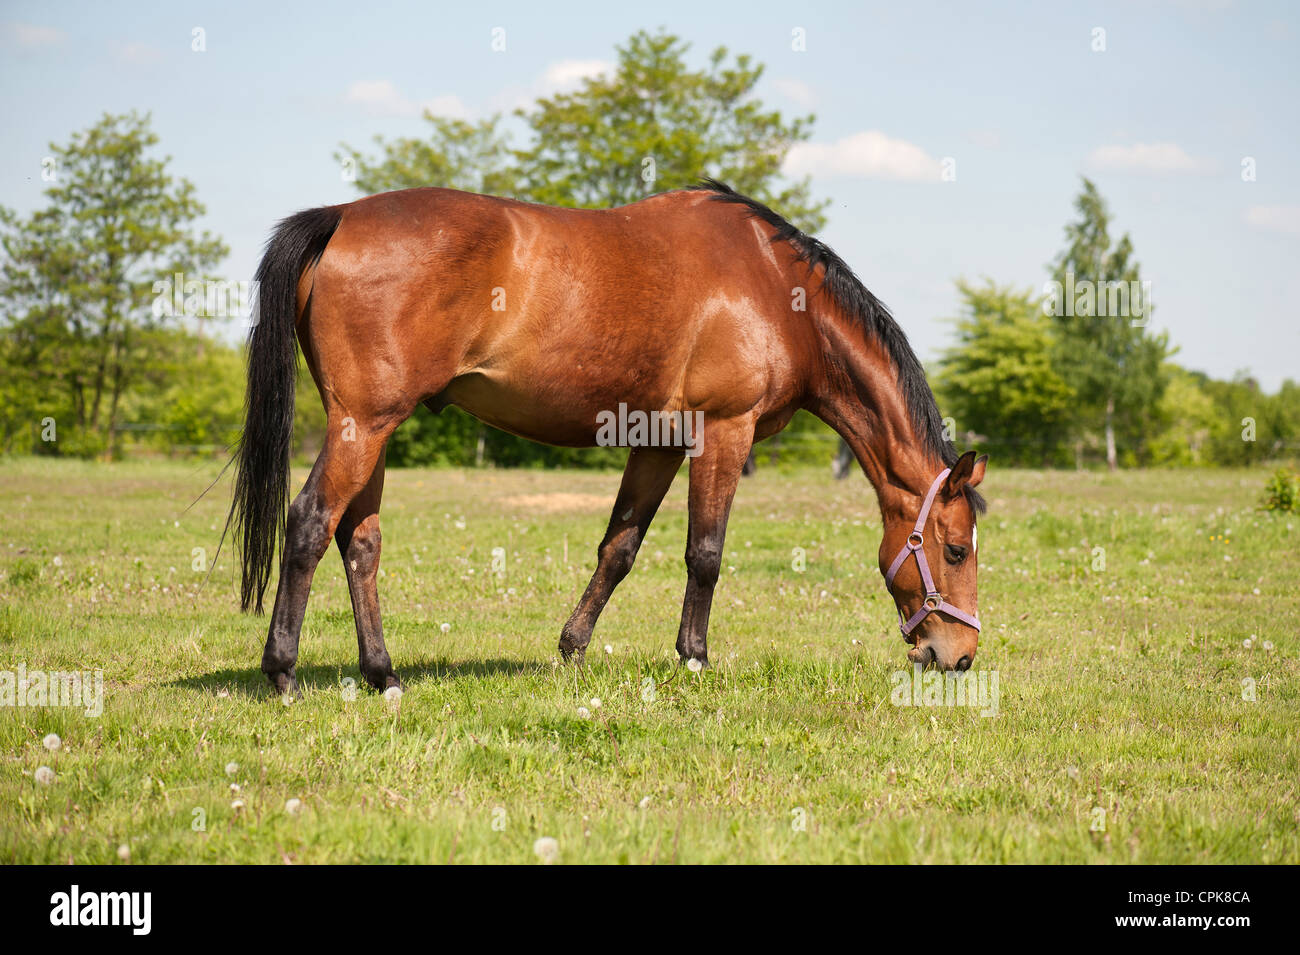 Horse grazing in the pasture - Stock Image